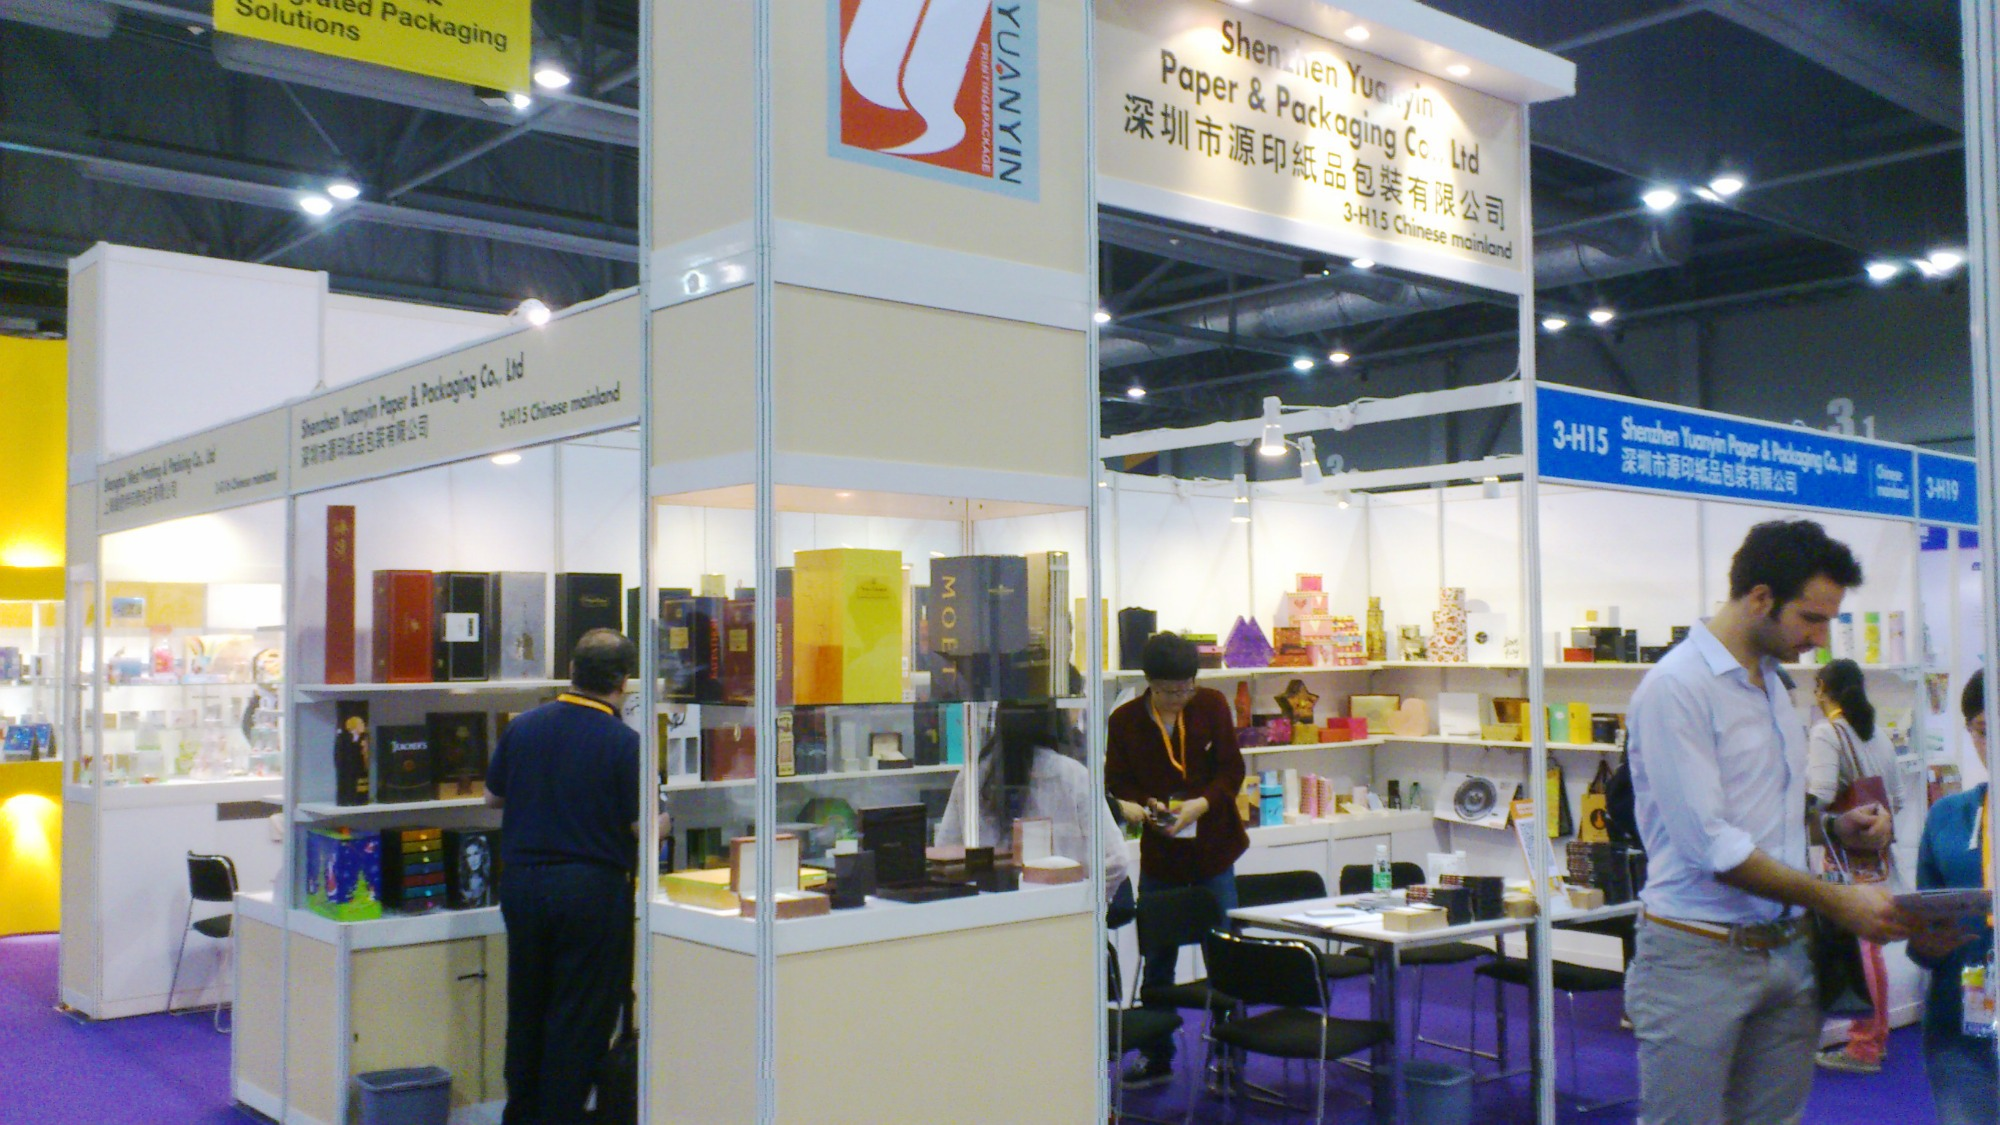 2013 Hong Kong Printing & Packaging Fair